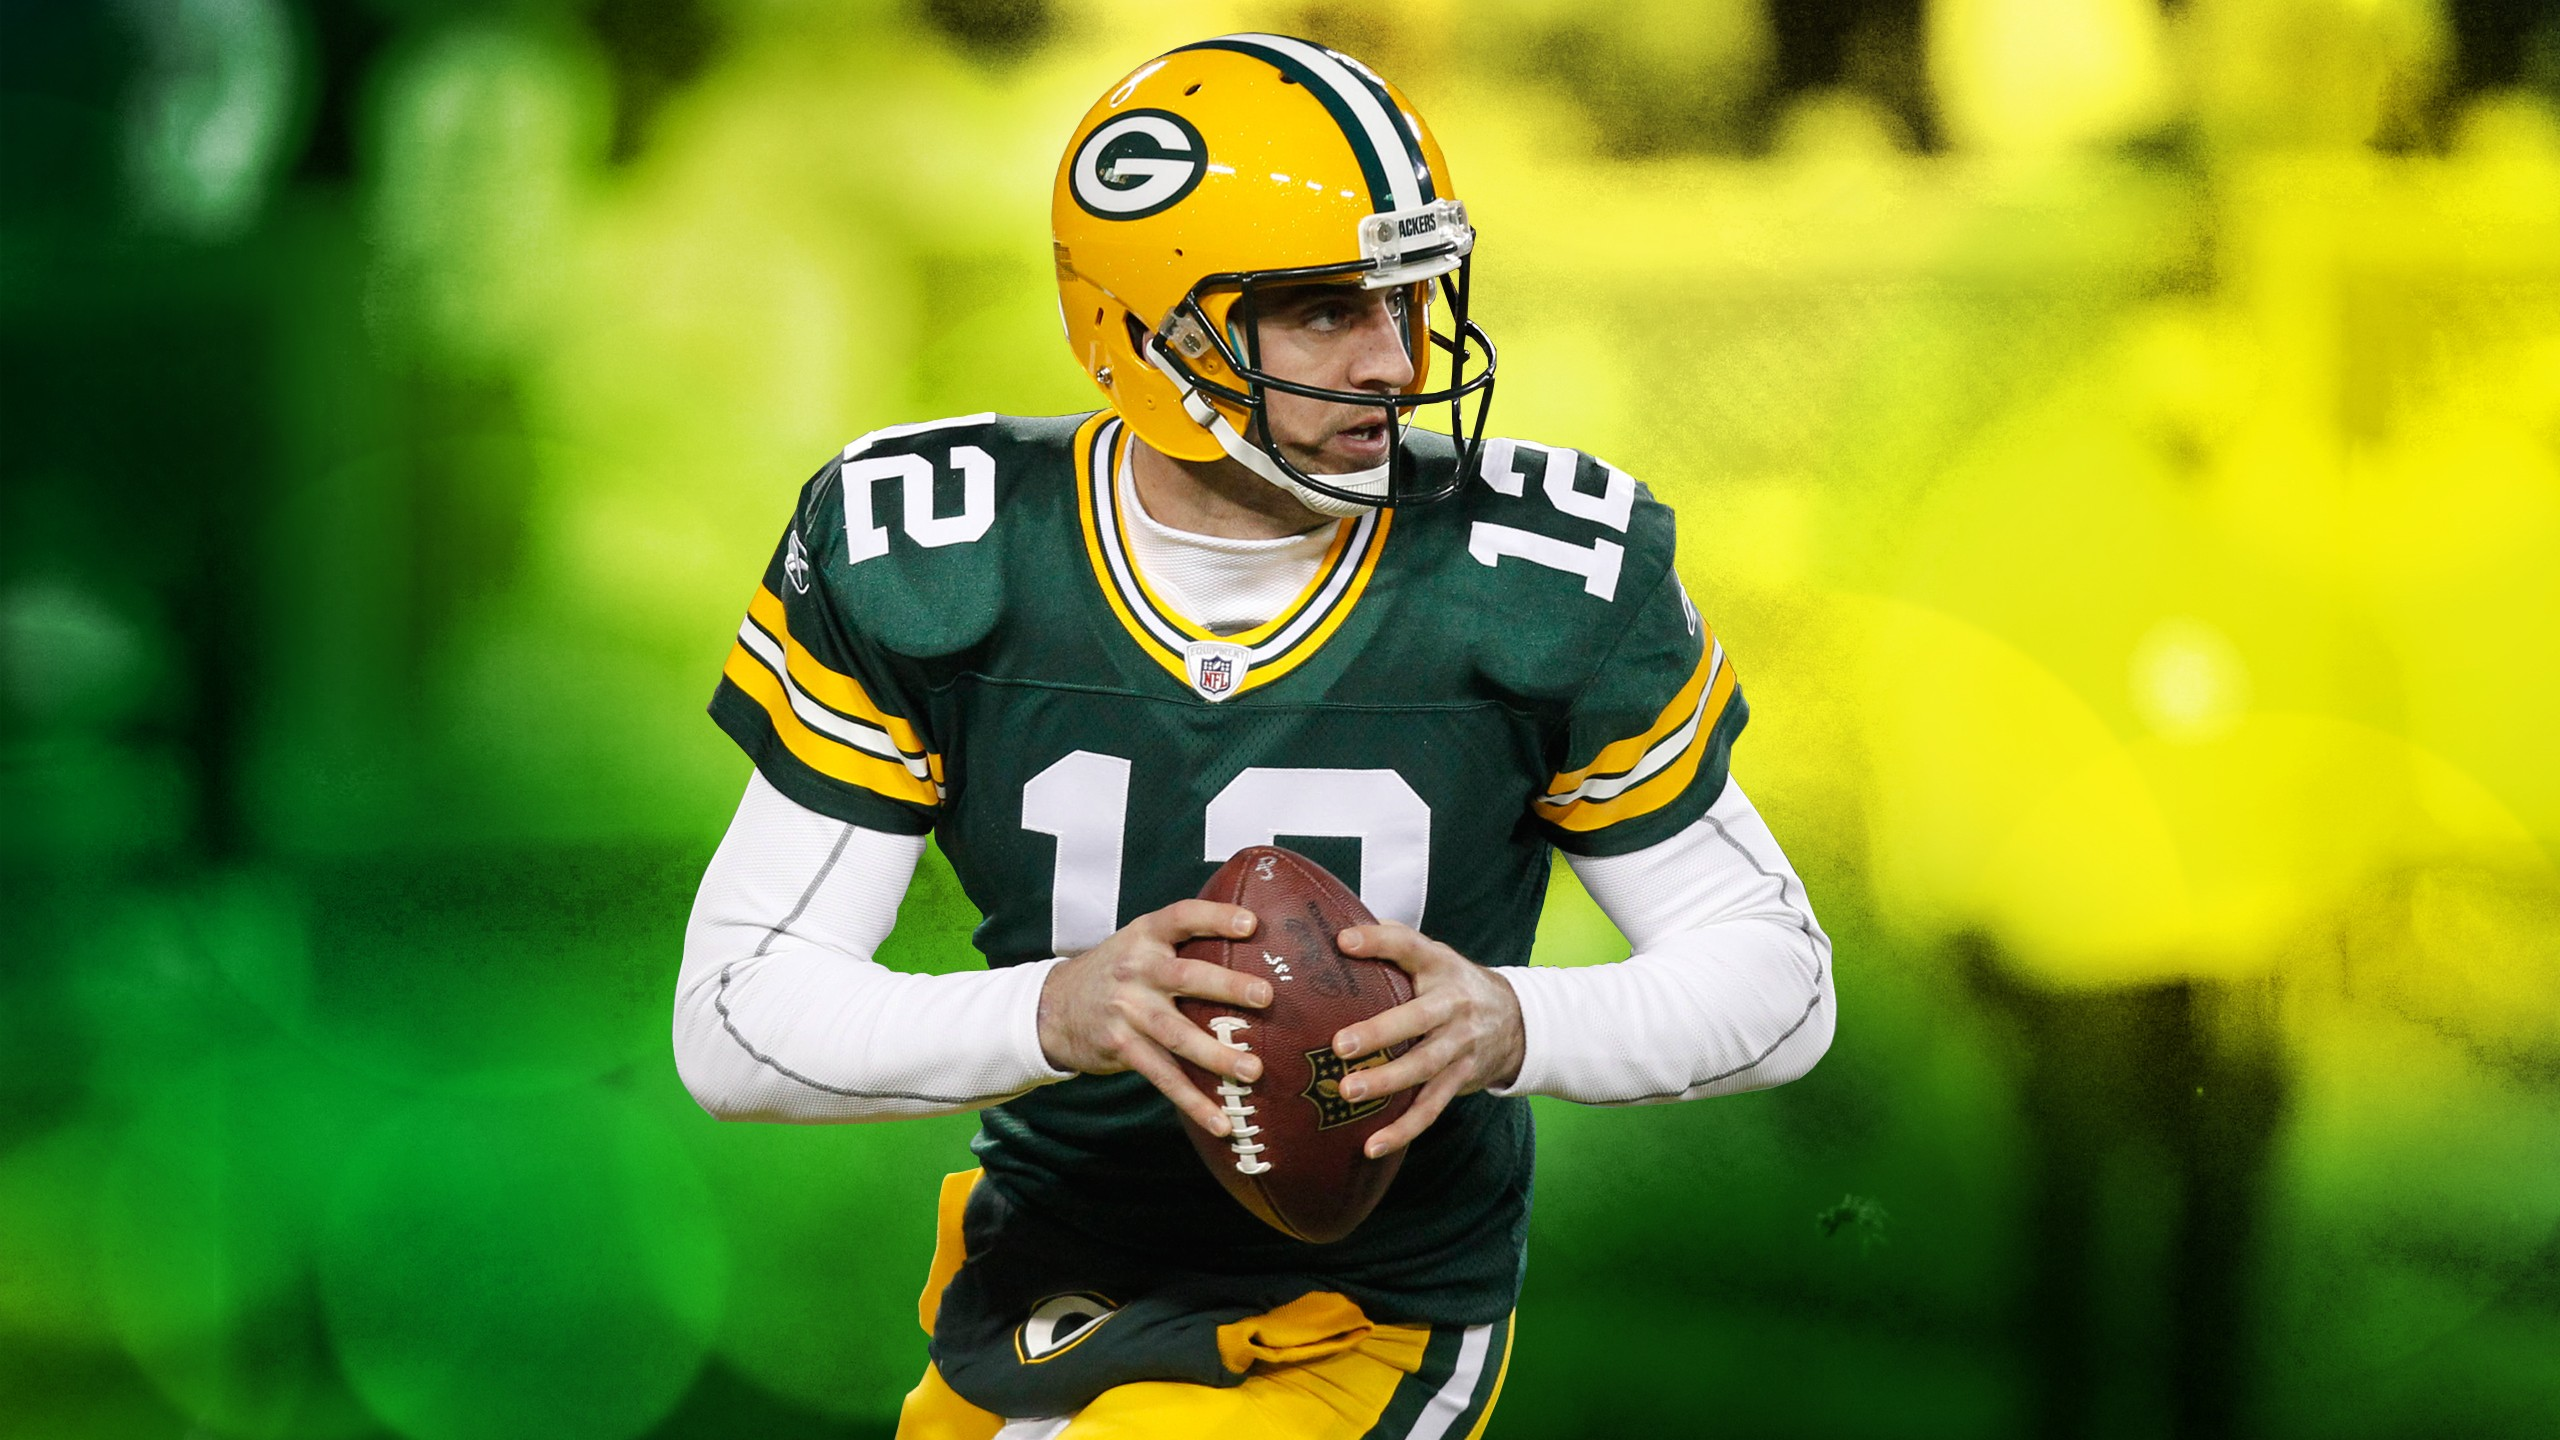 Aaron Rodgers Wallpaper 1 Download Free Full HD Backgrounds For